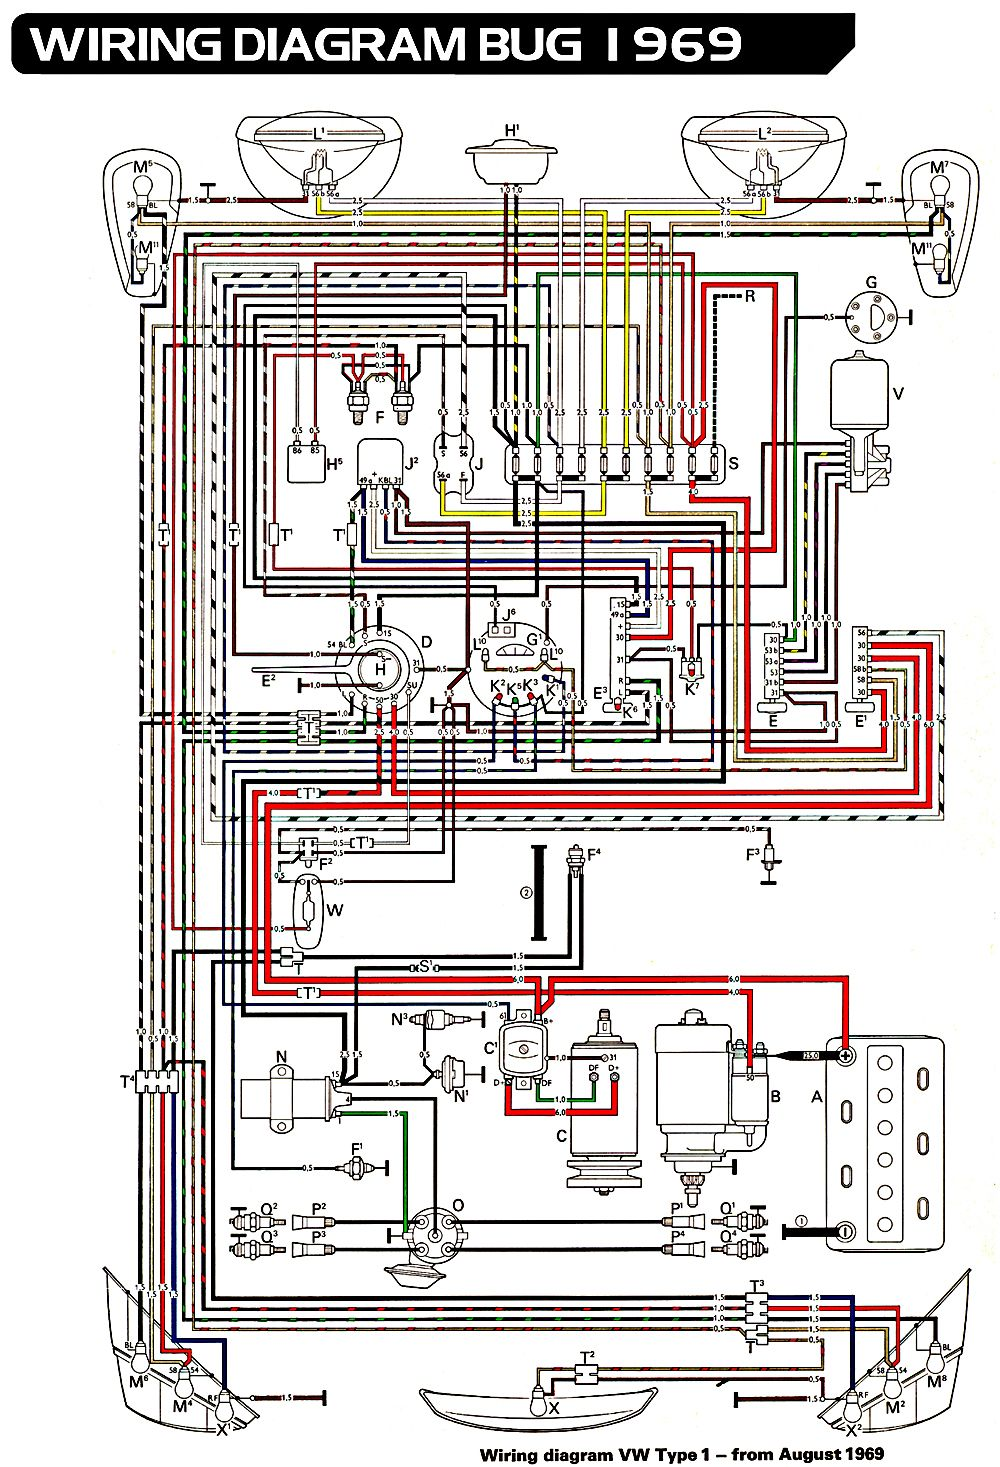 6d75c15875479254f26a32a8499d9044 vw type 1 wiring diagram 1961 vw type 1 wiring diagram \u2022 wiring wiring harness for 1967 vw beetle at gsmx.co